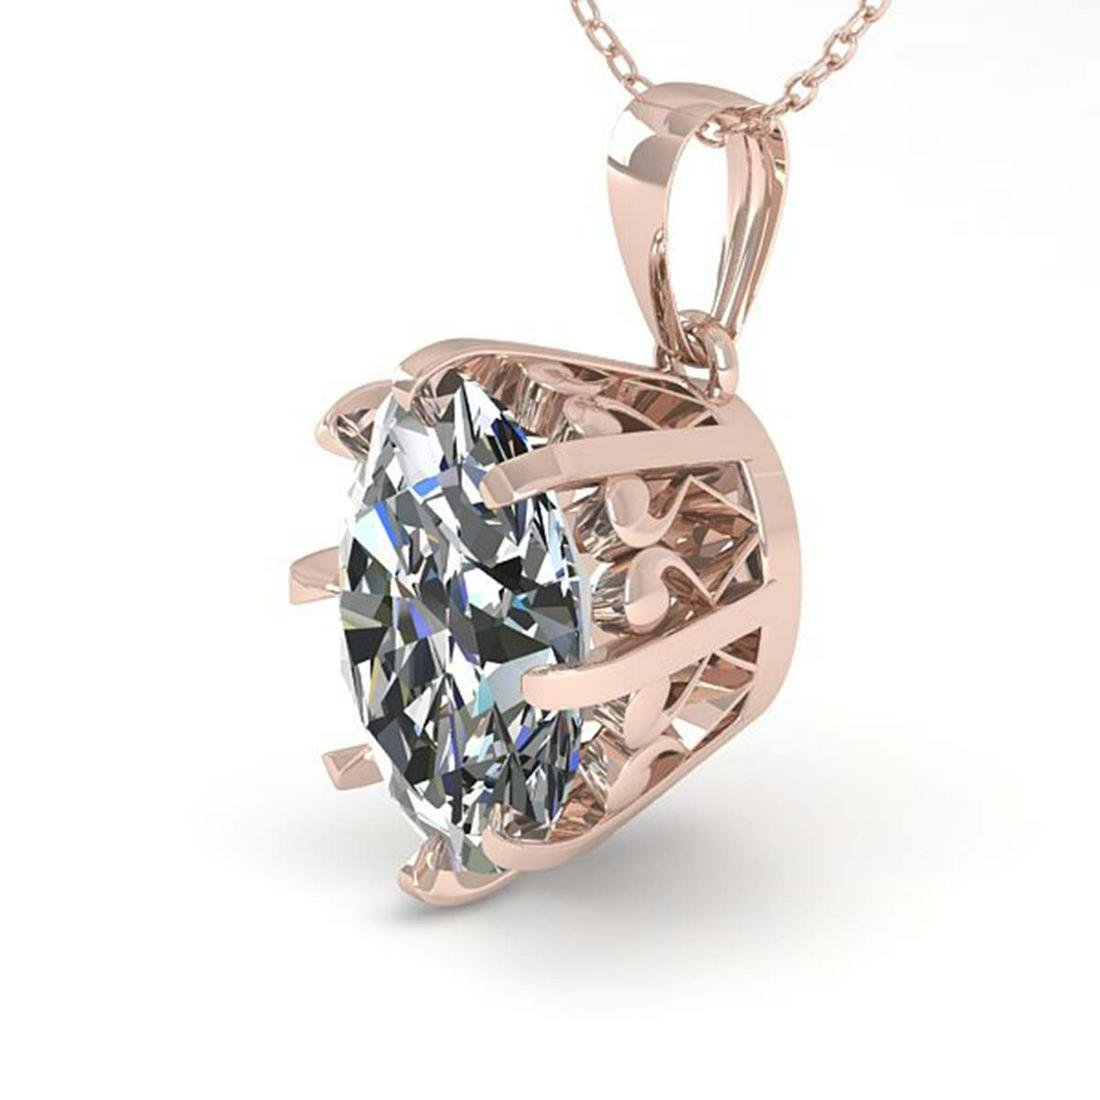 1 ctw VS/SI Oval Diamond Necklace 18K Rose Gold